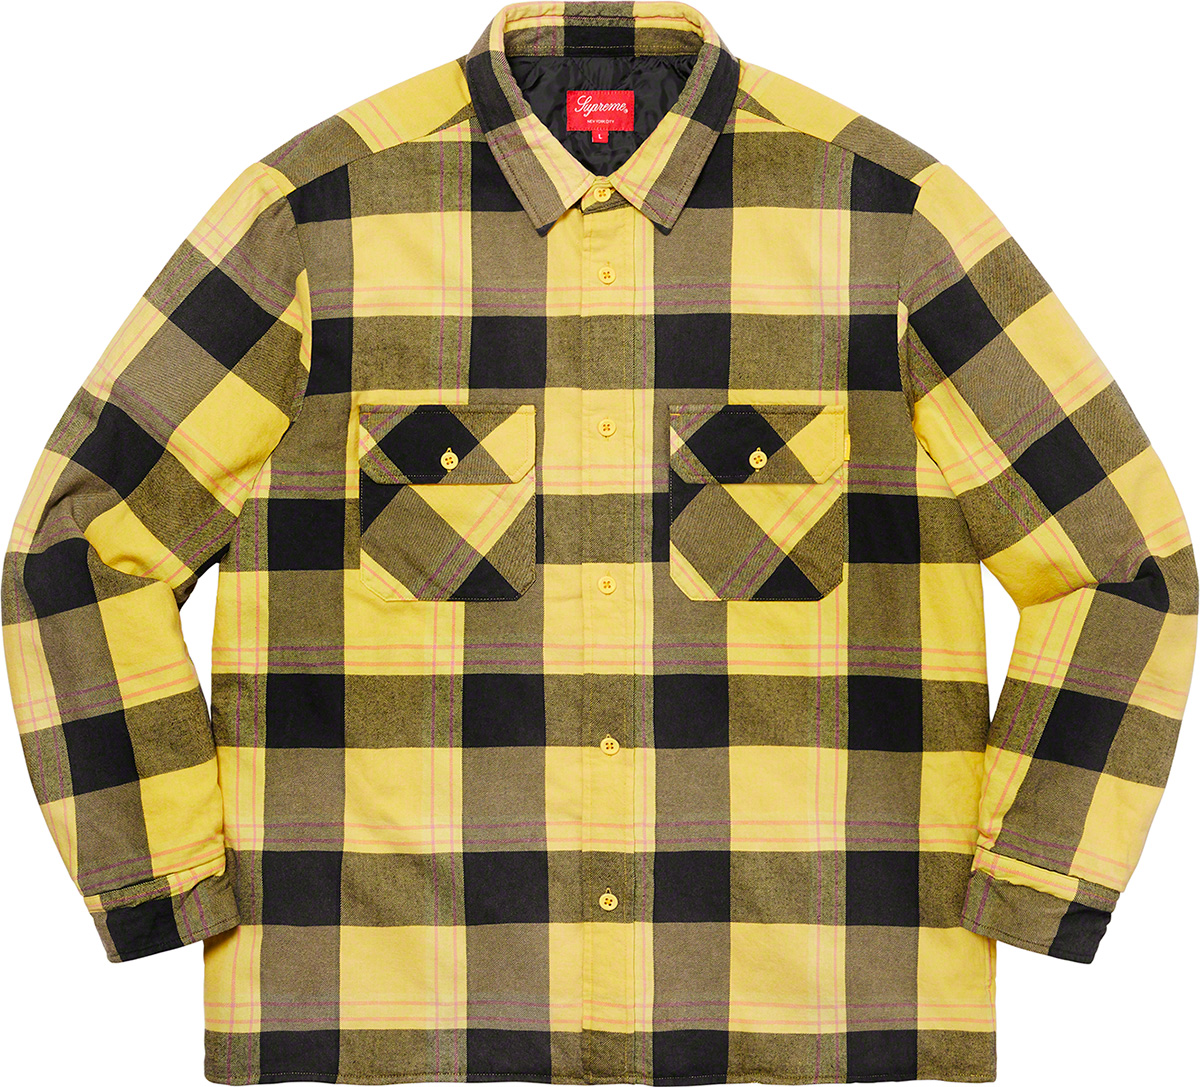 Supreme 2020fw Quilted Flannel Shirt シュプリーム キルテッド チェック シャツ イエロー 前